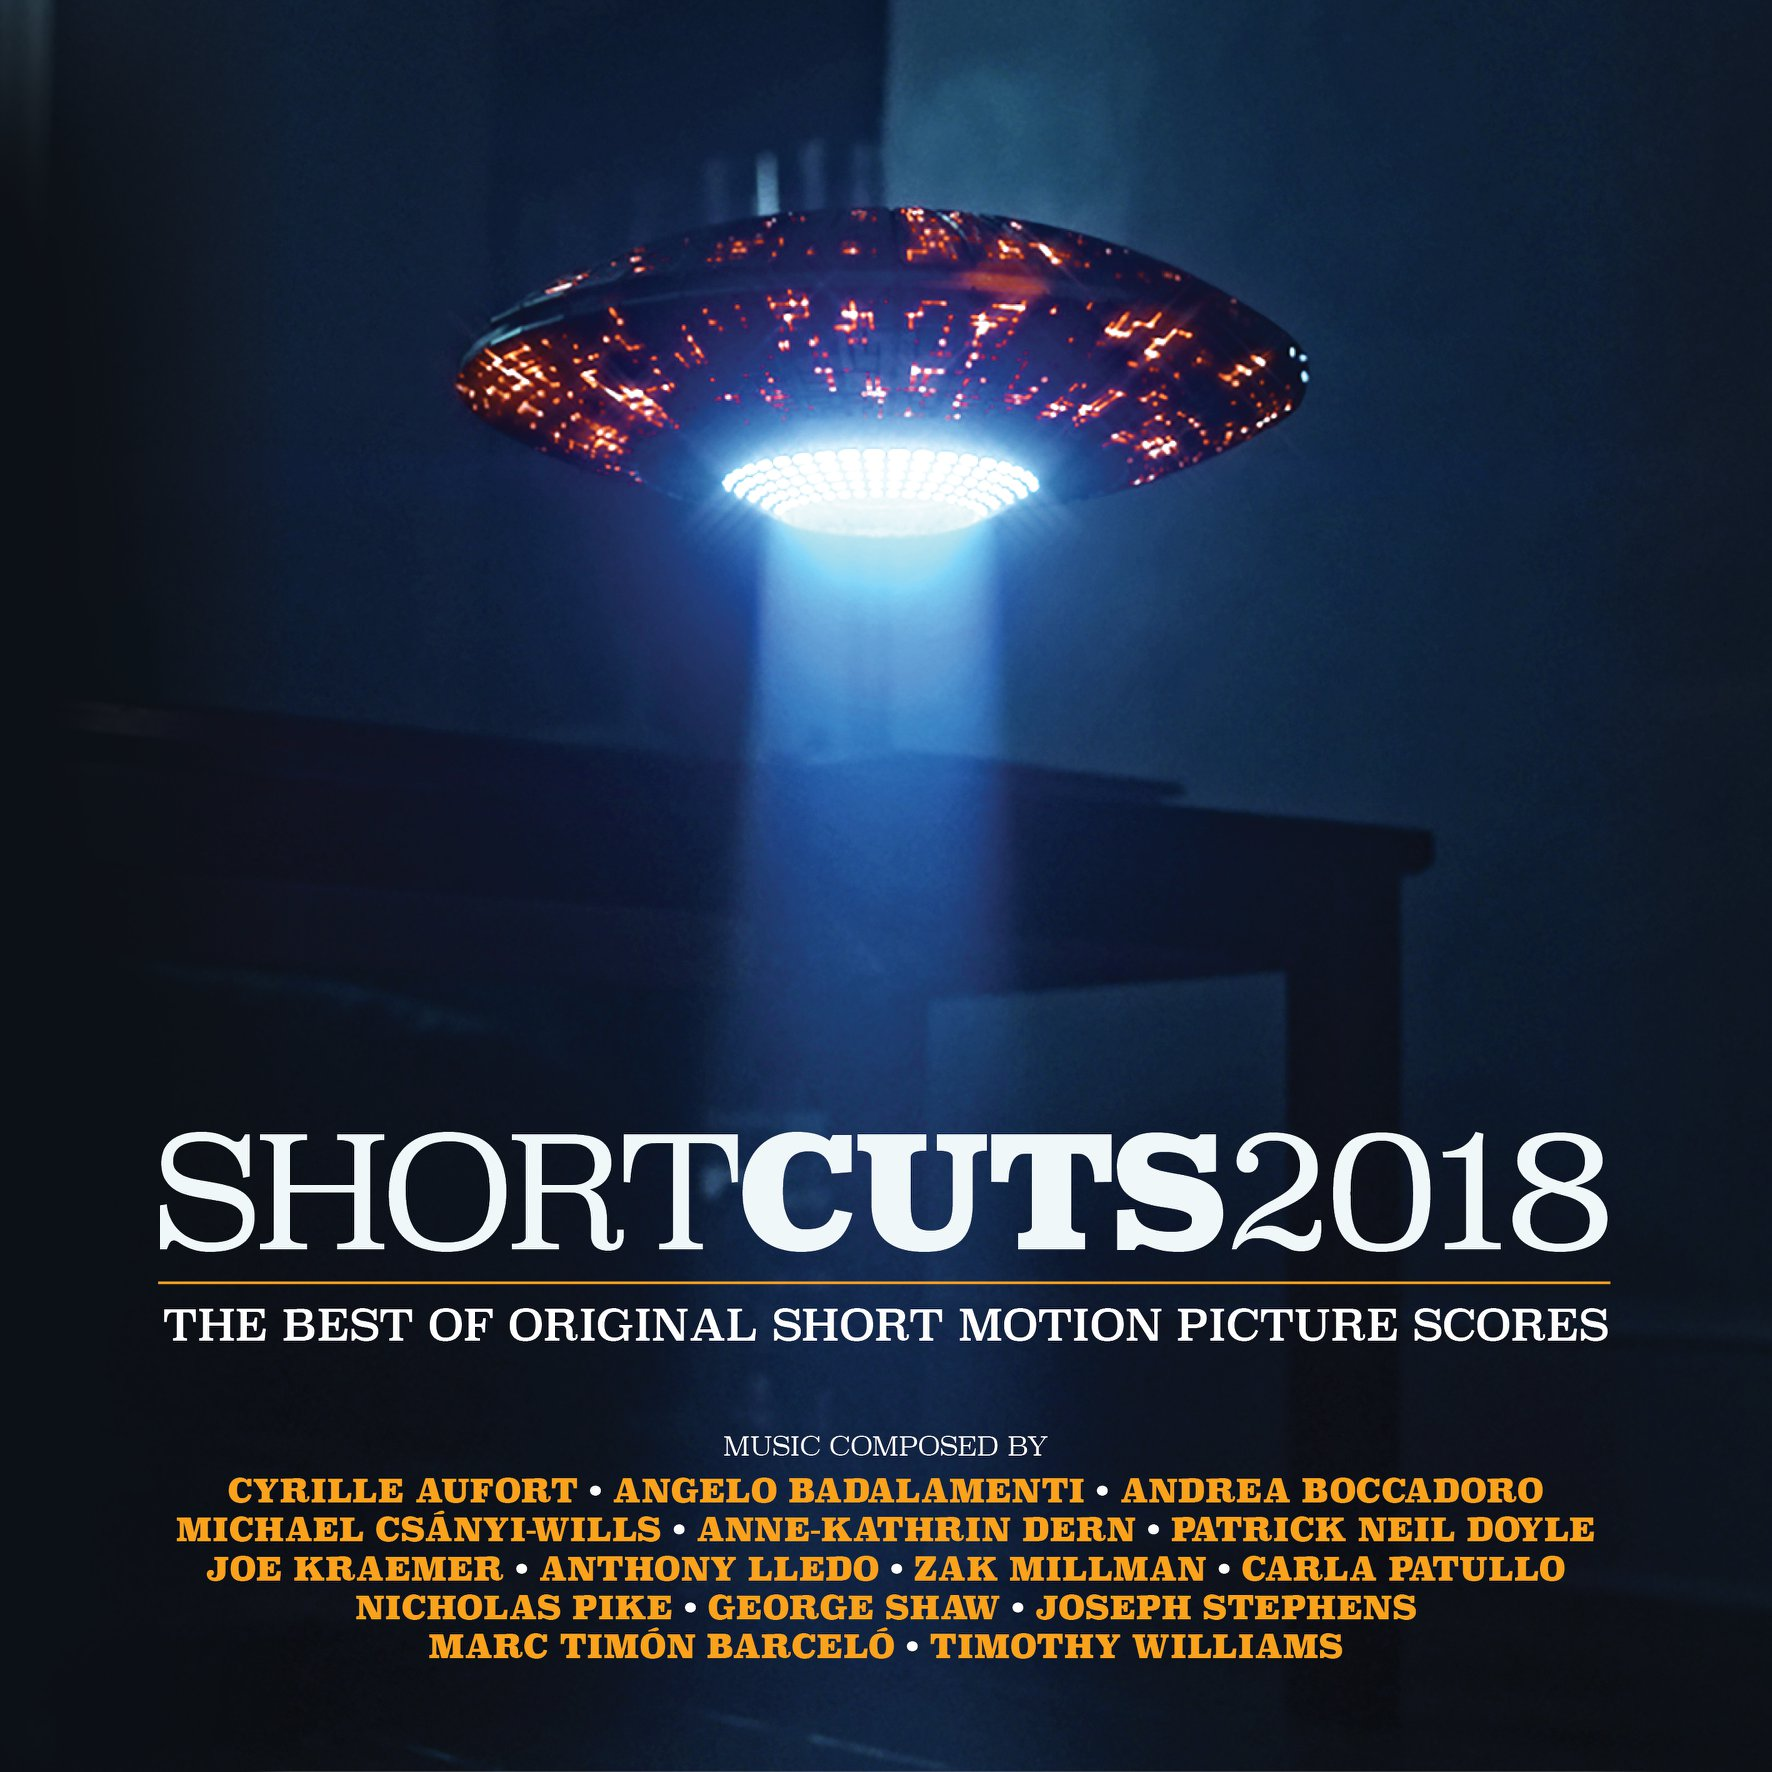 SHORTCUTS 2018 - Released by Movie Score Media/ Quartet RecordsFeaturing music from the short animated documentary LOTTE THAT SILHOUETTE GIRL.Available on: Itunes, amazon